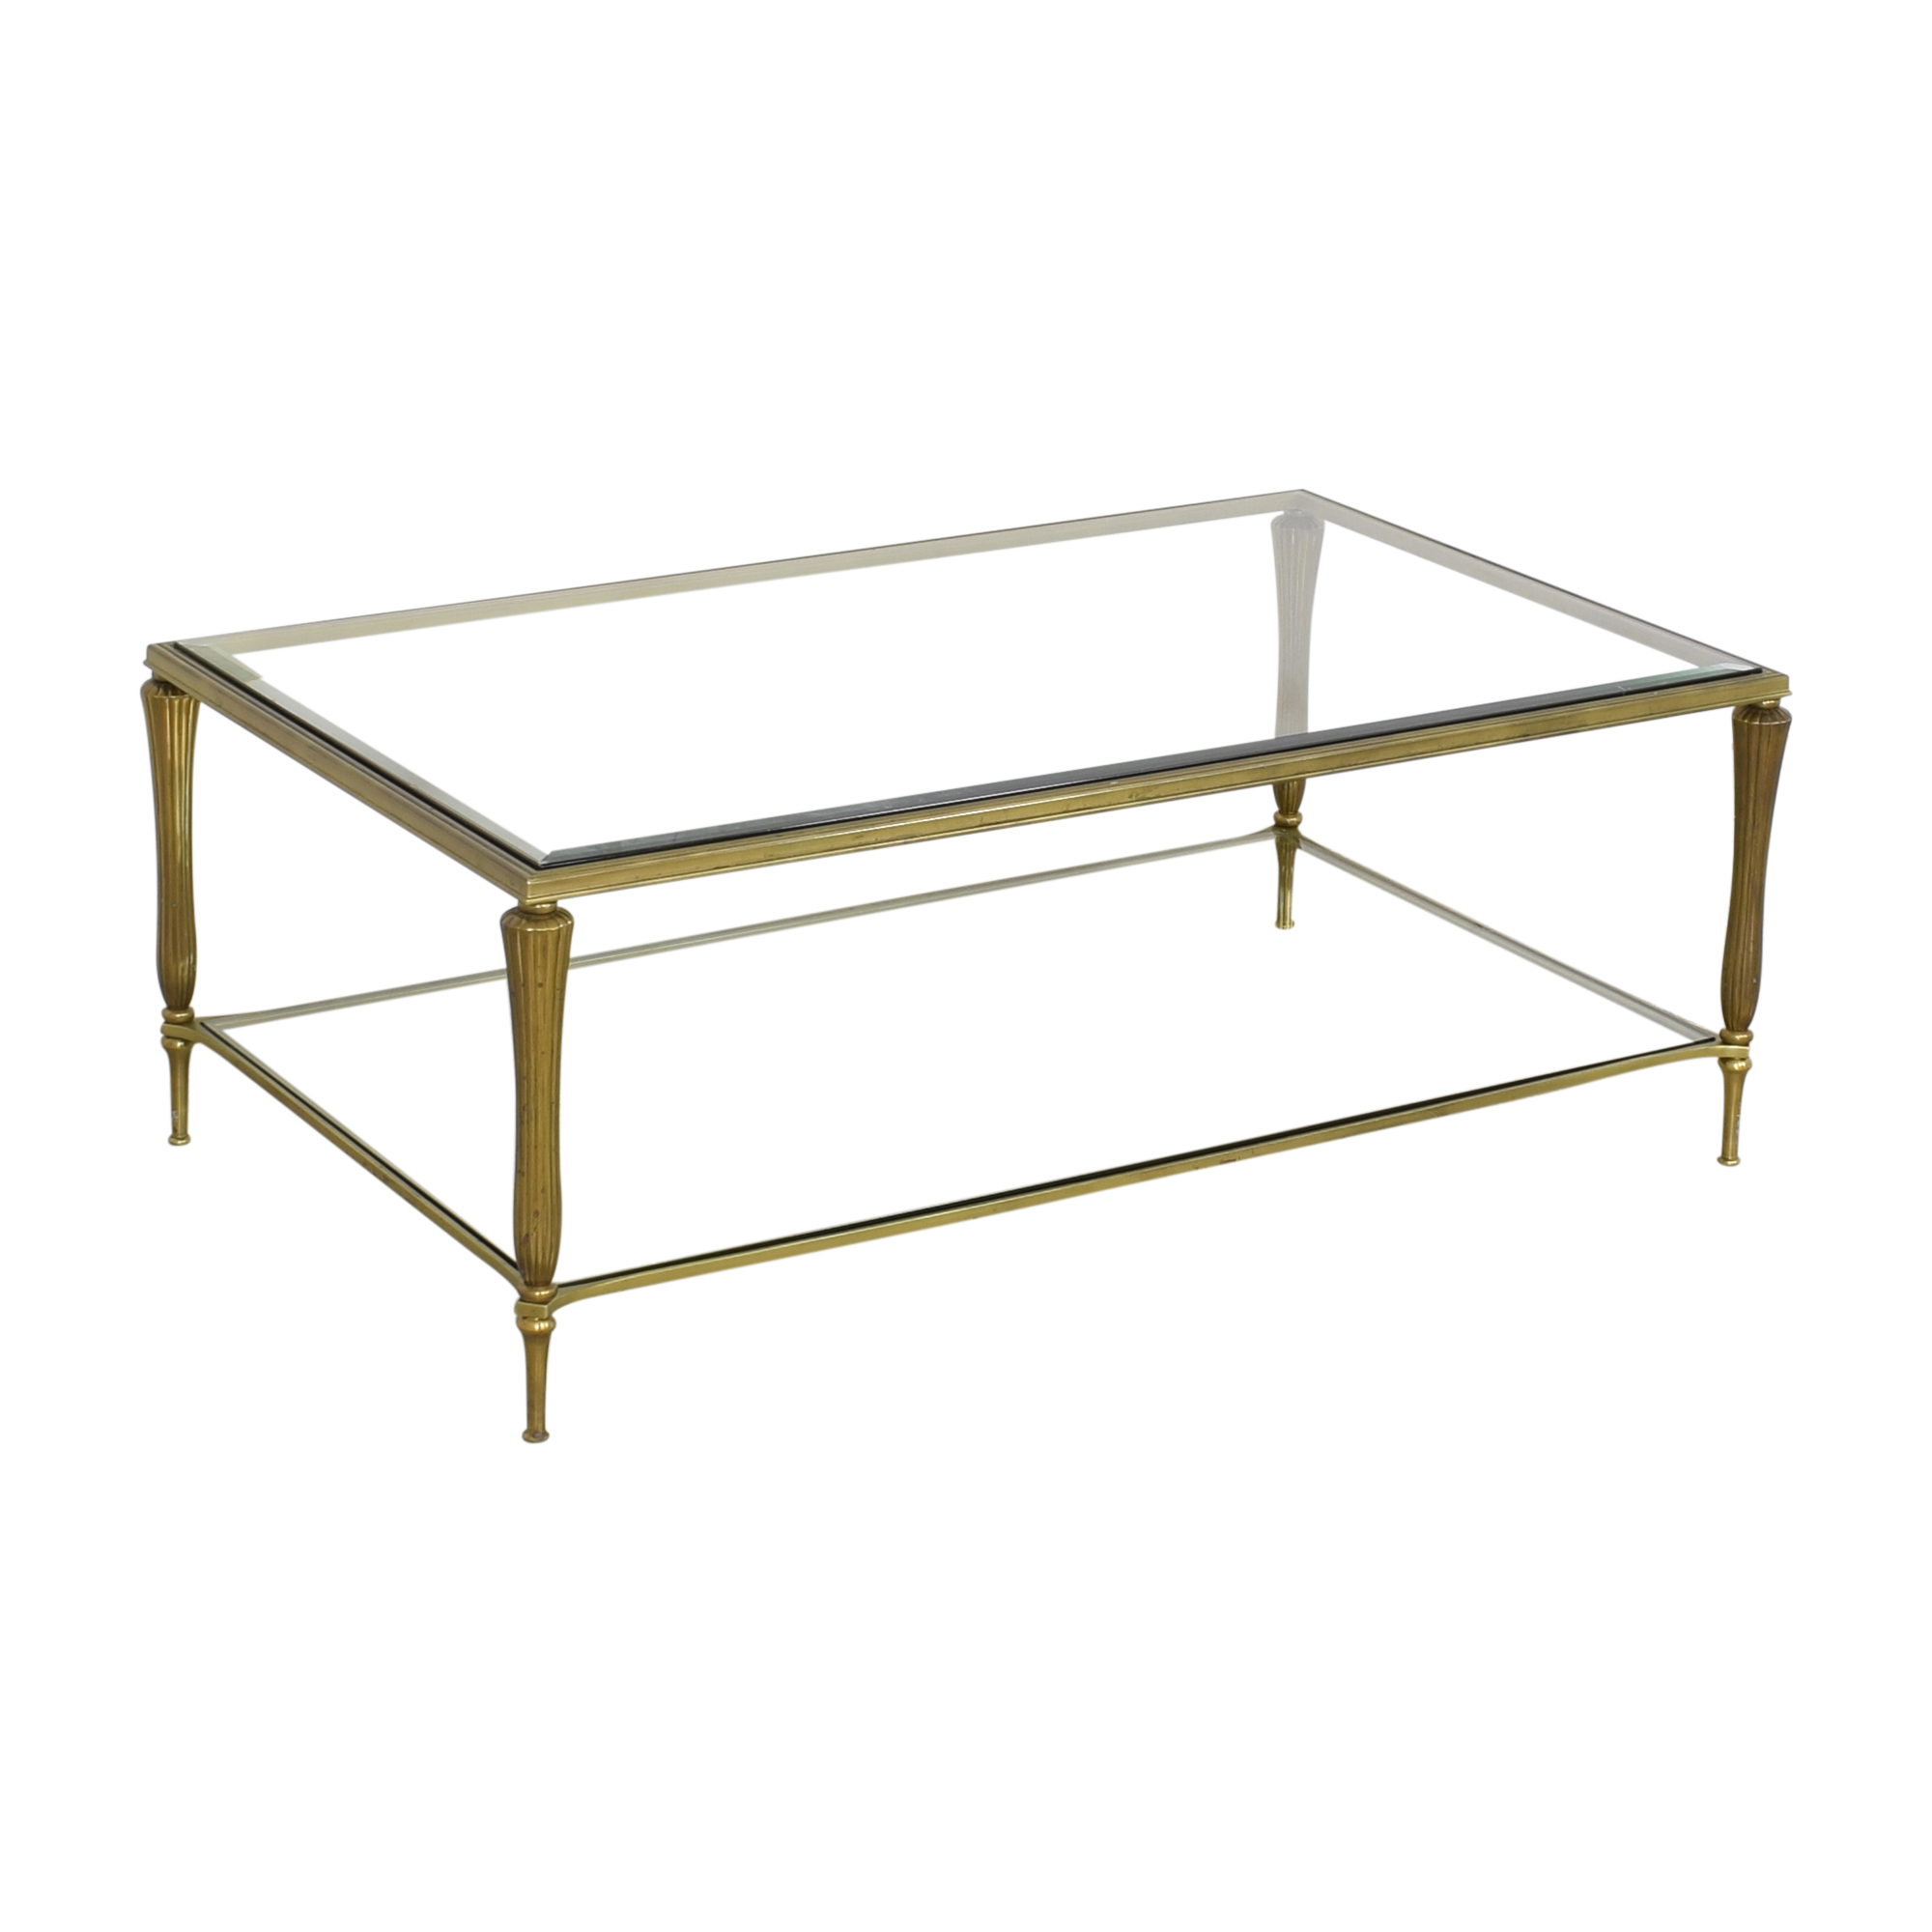 Ethan Allen Ethan Allen Two Tier Coffee Table on sale